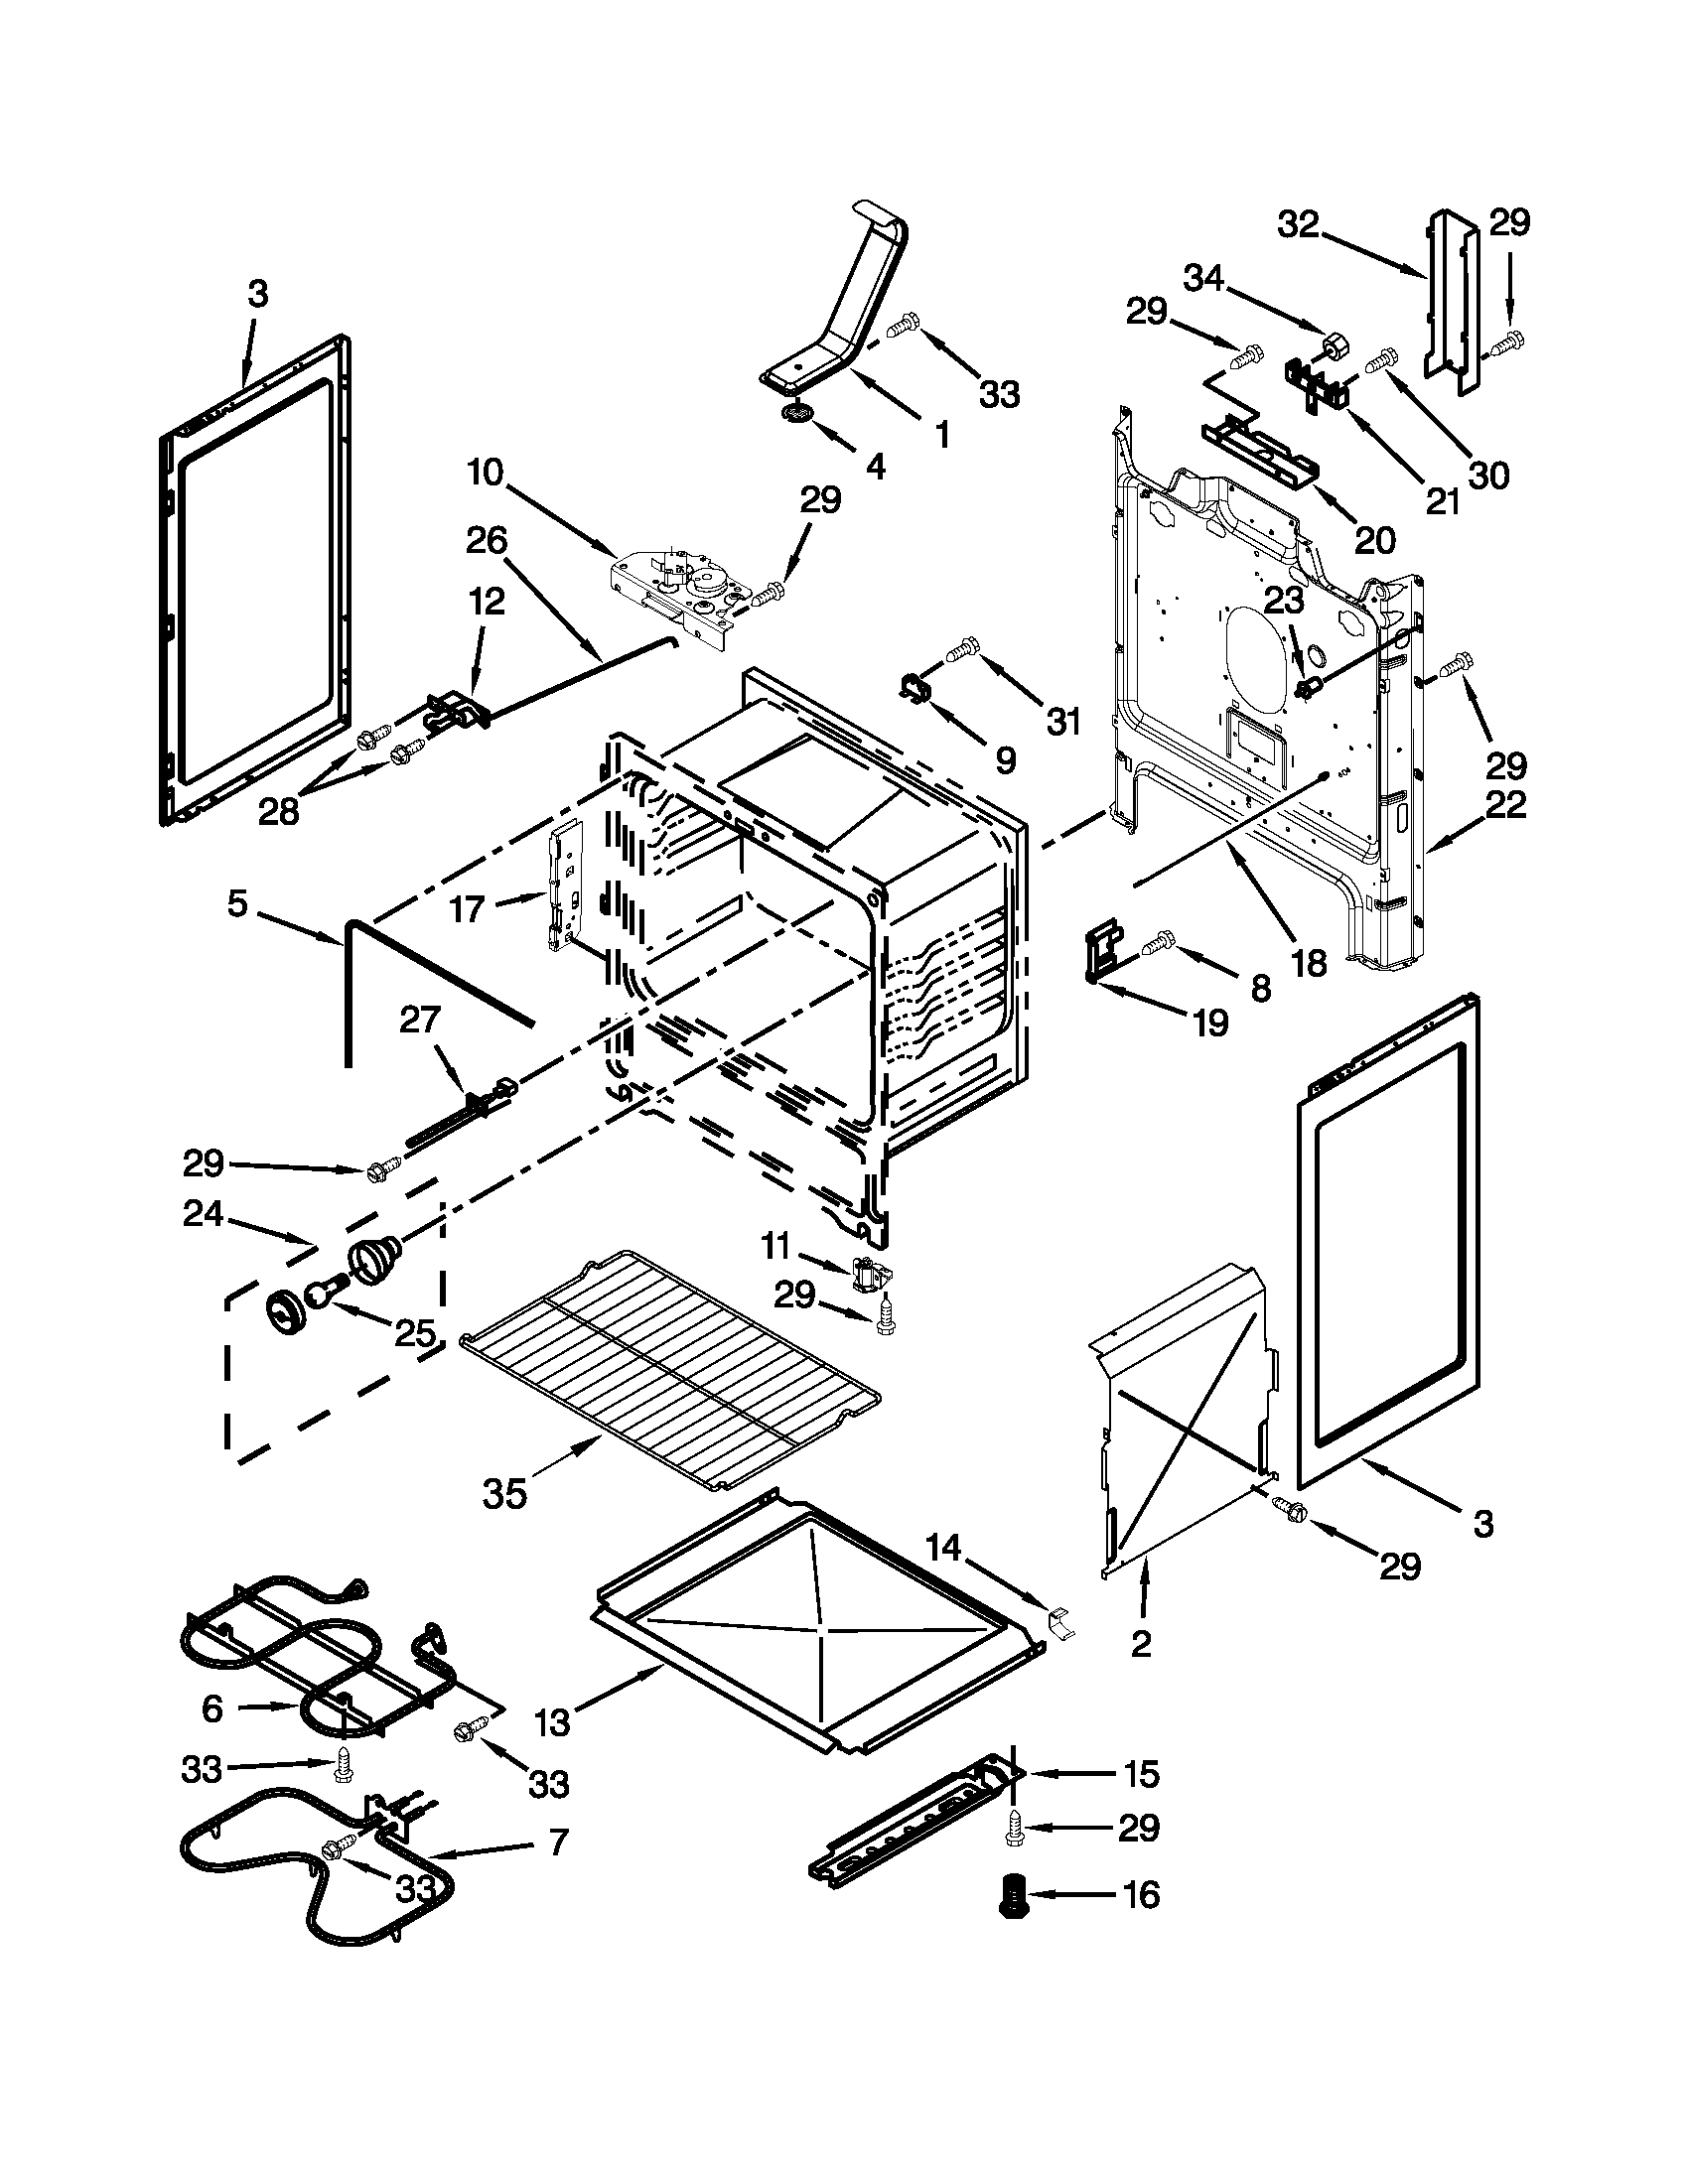 CHASSIS PARTS Diagram & Parts List for Model aer5630baw0